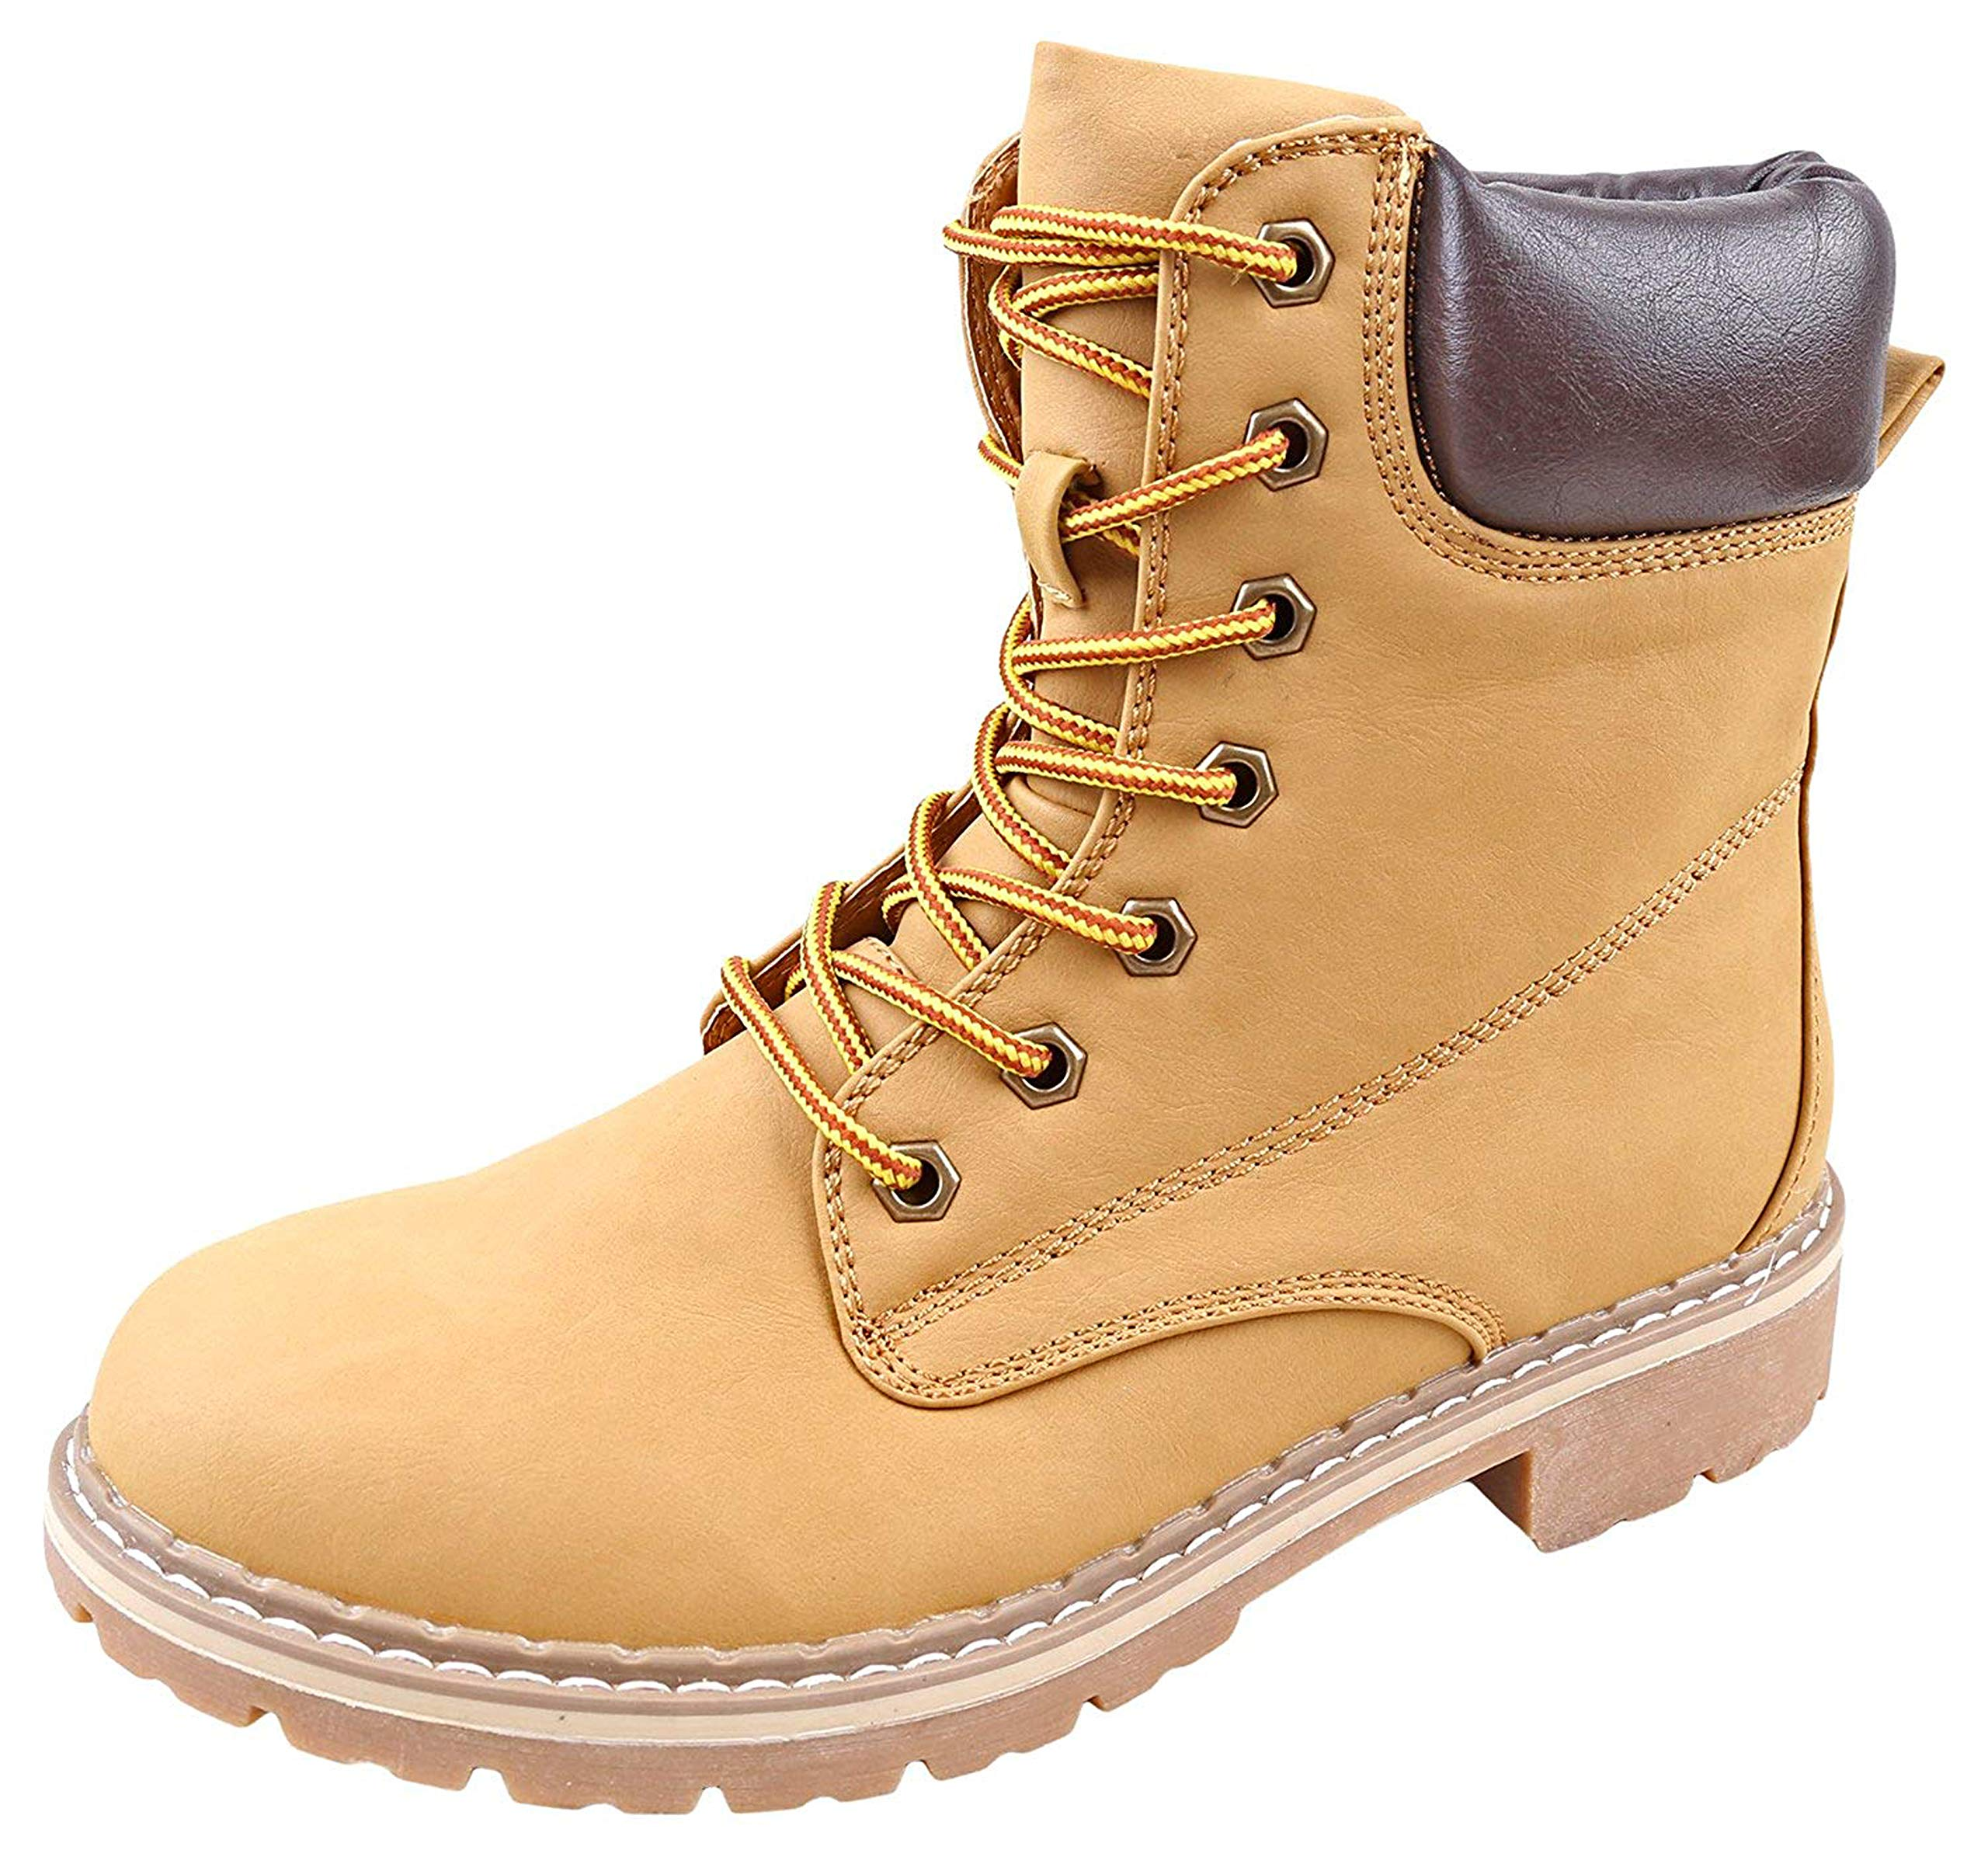 Forever Women's Ankle High Combat Hiking Boots-3,Camel,8.5